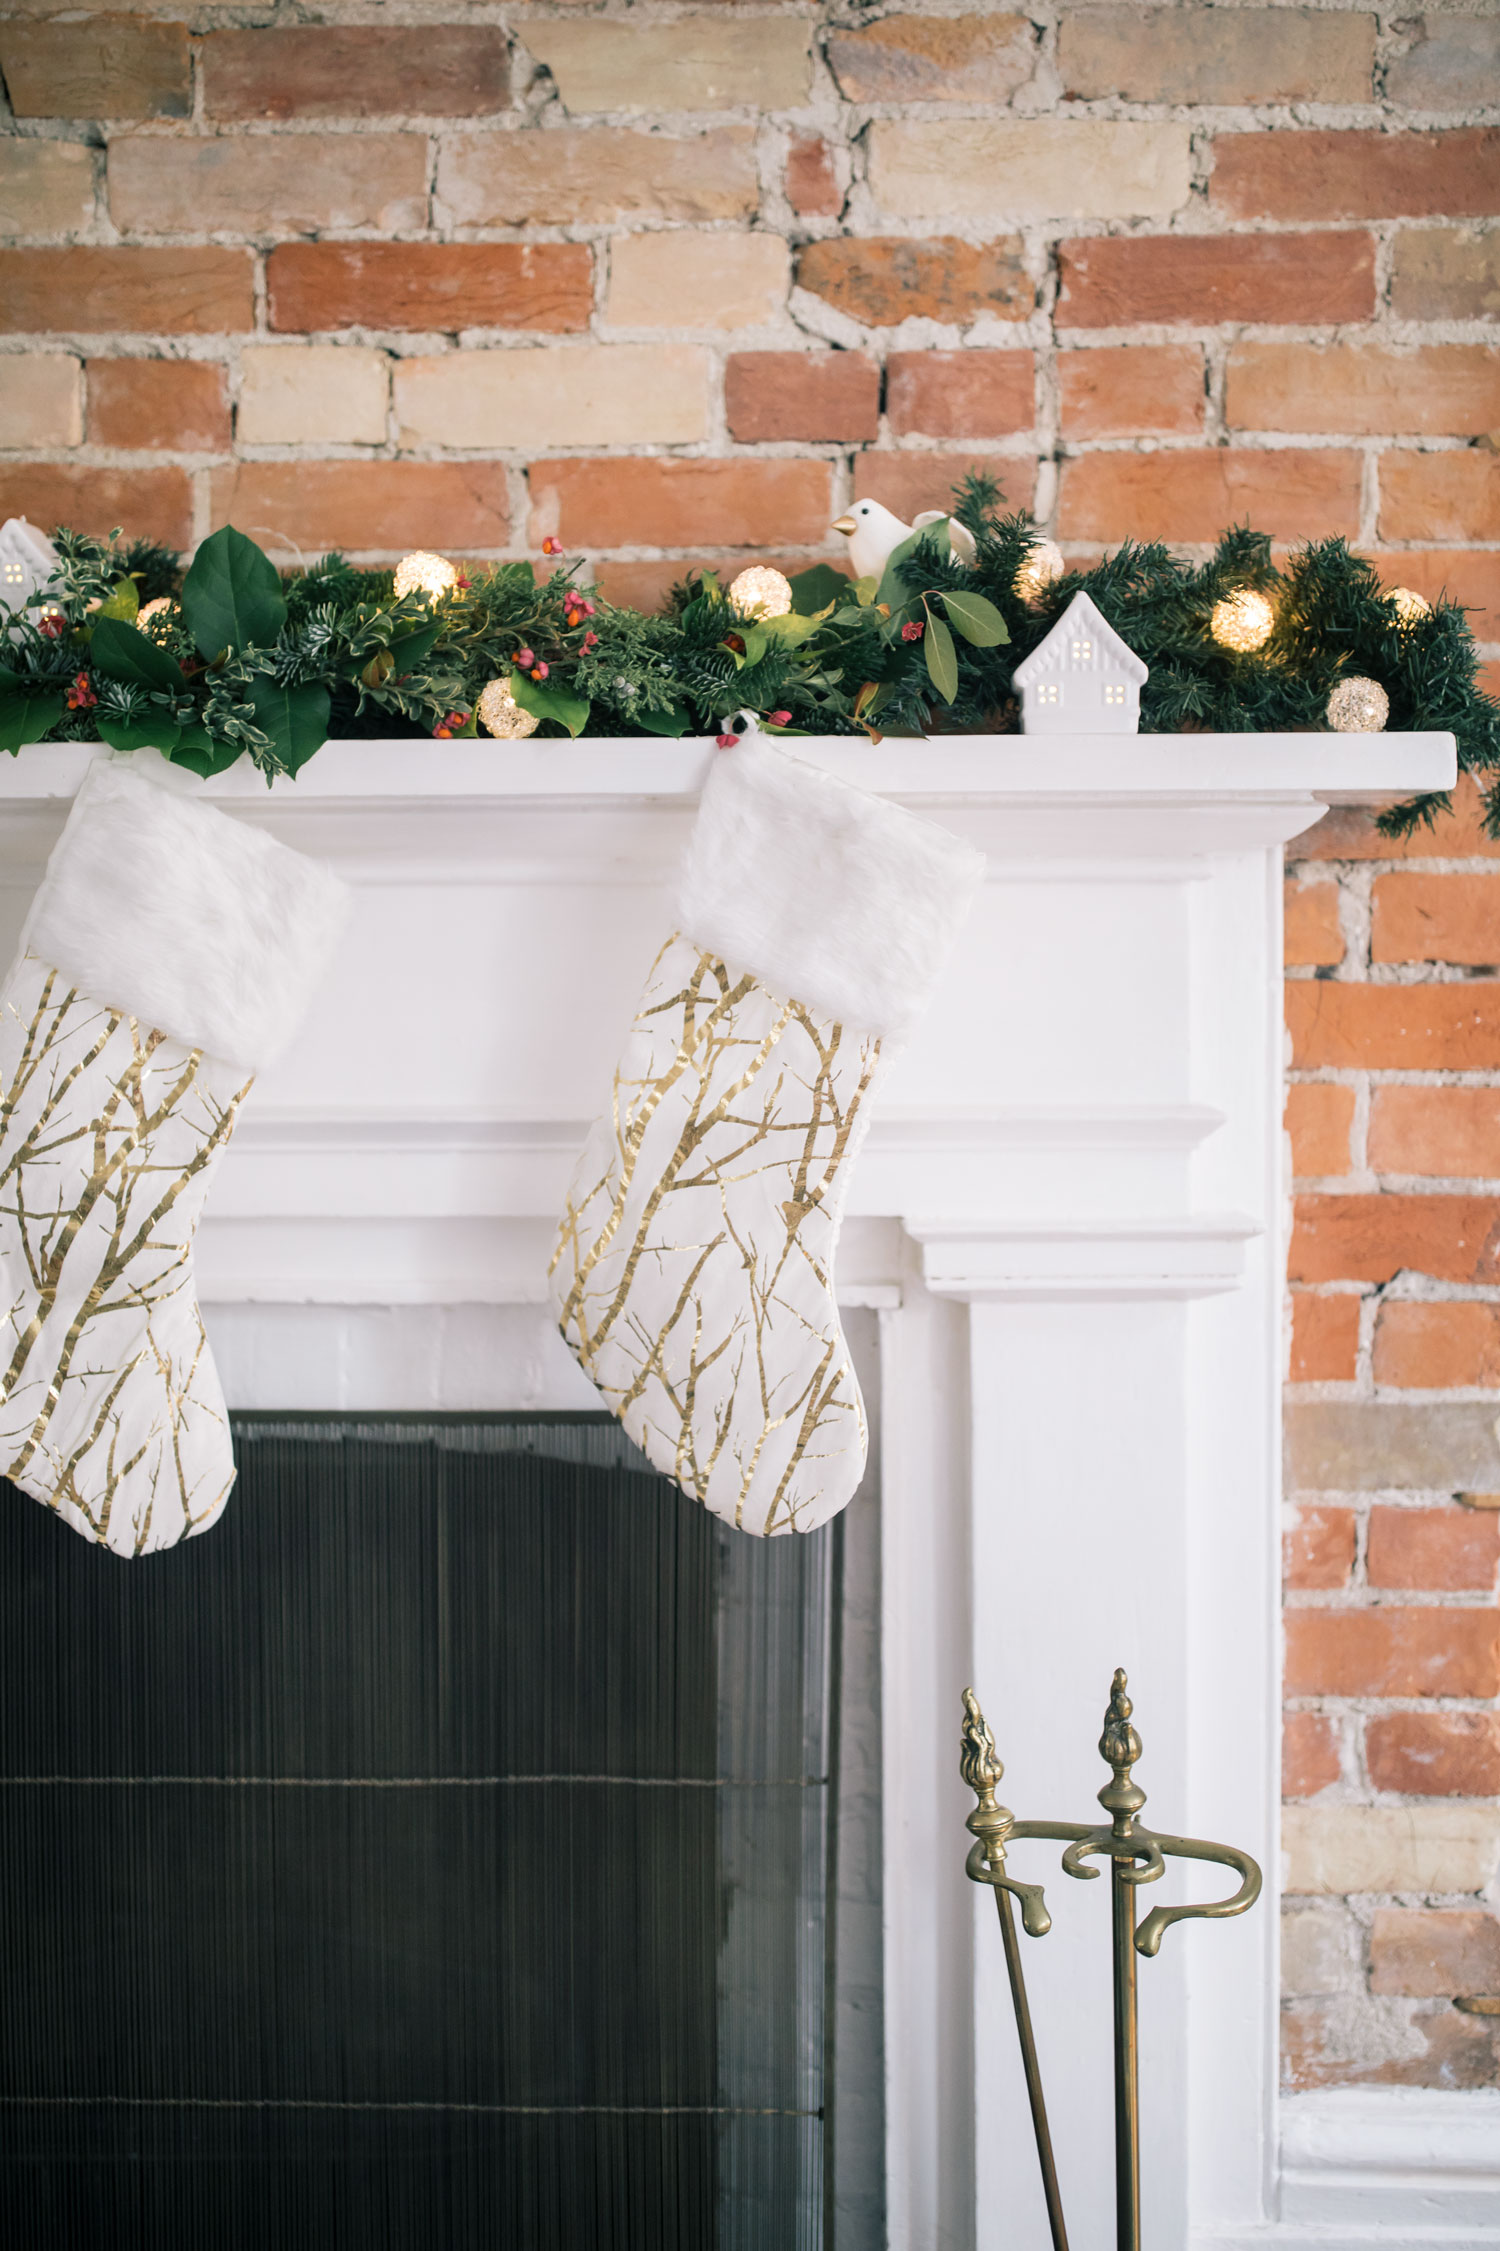 Christmas 2017 Gift Guide: Ultimate Stocking Stuffers | The ...